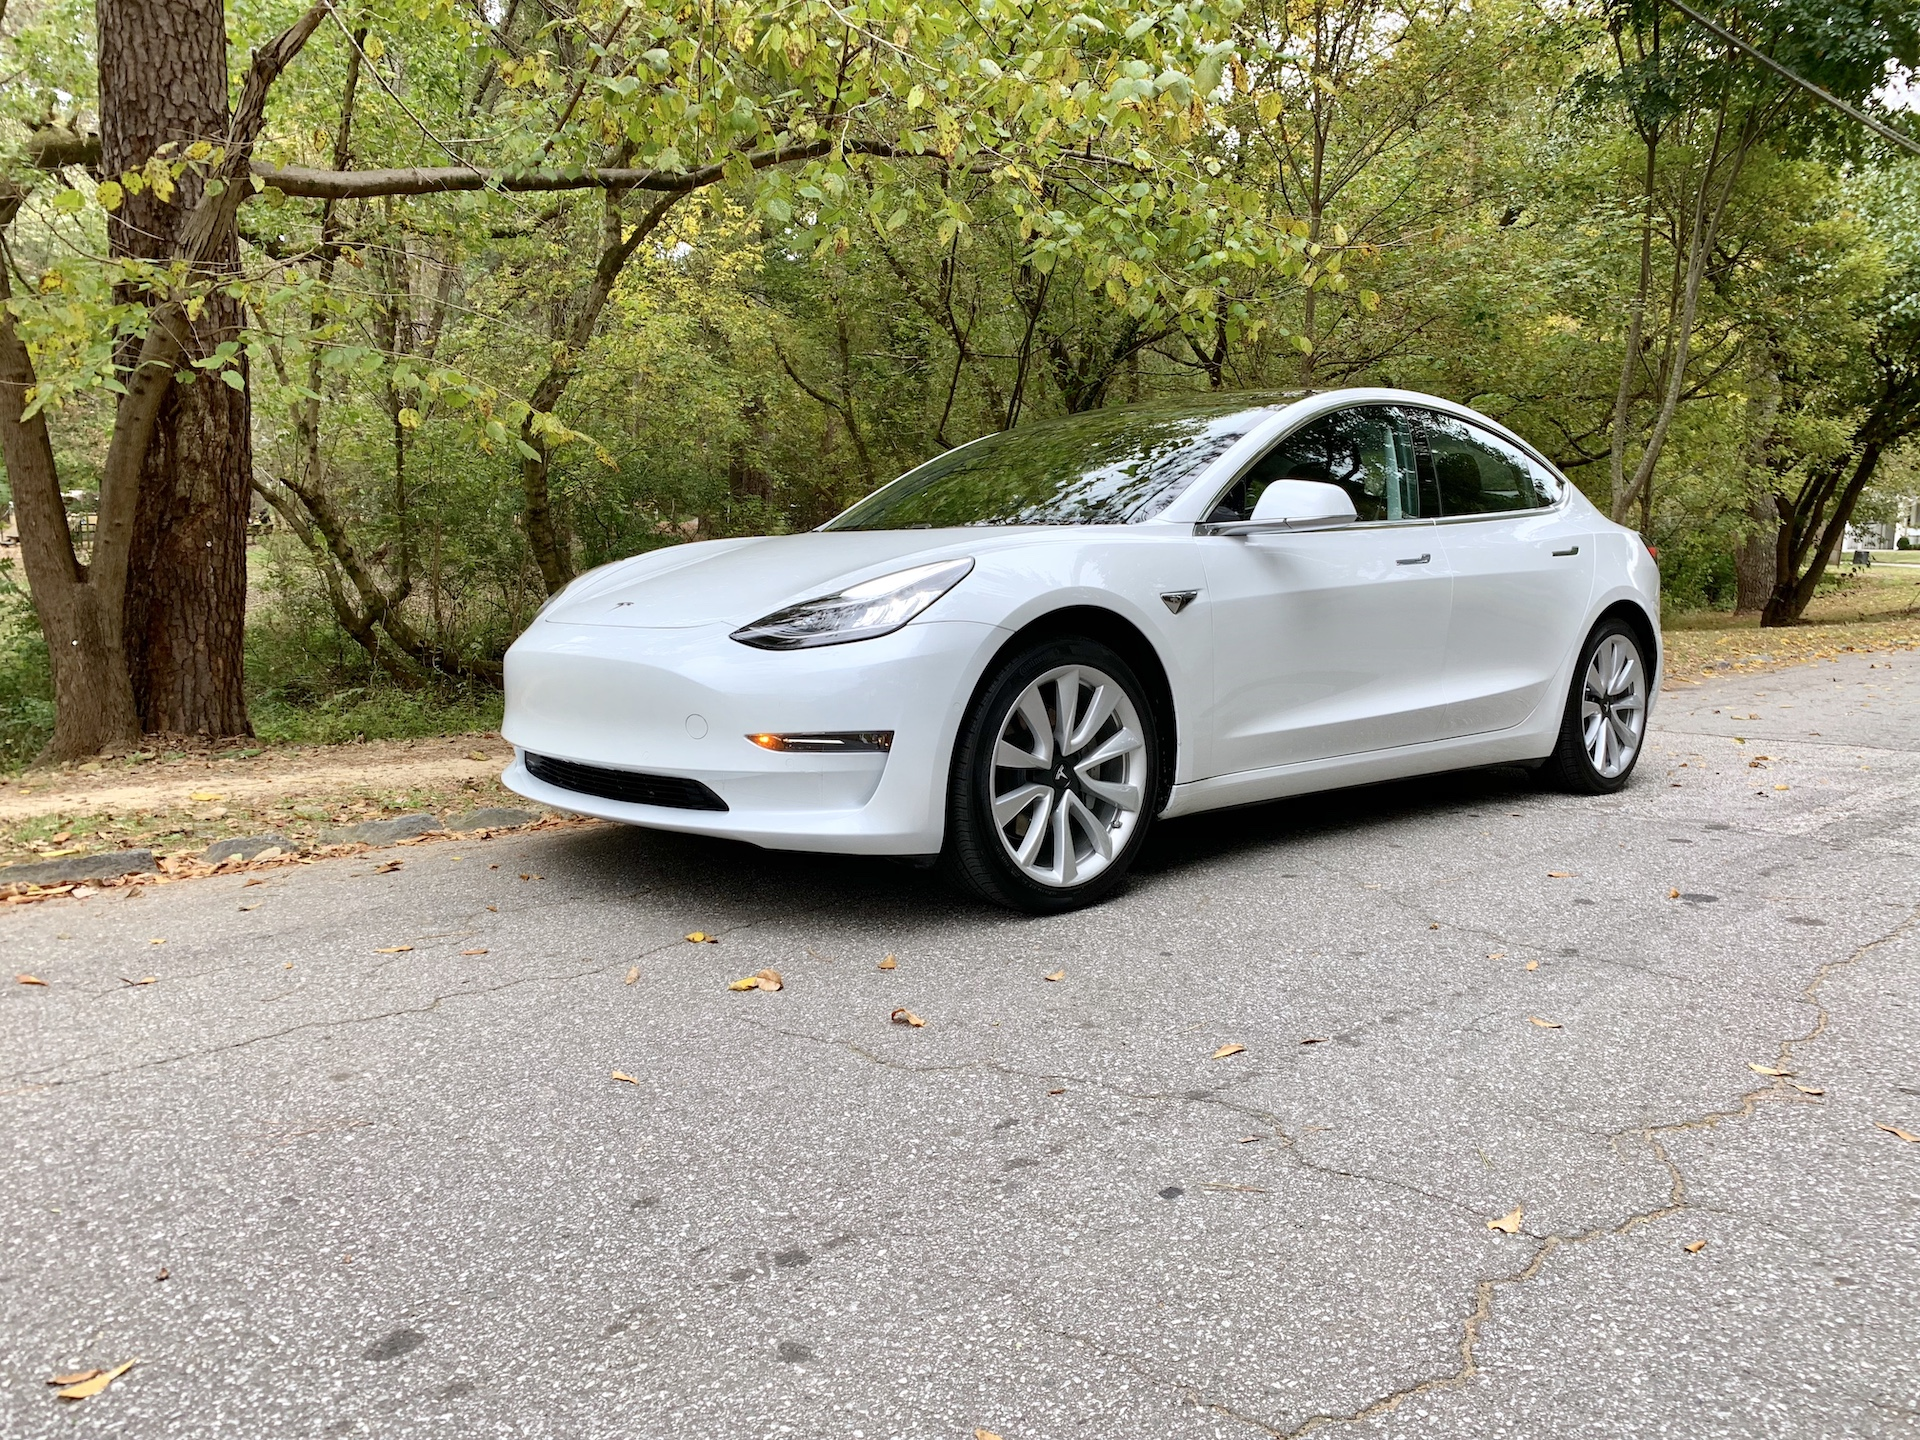 $35,000, 220-mile Tesla Model 3 now on sale